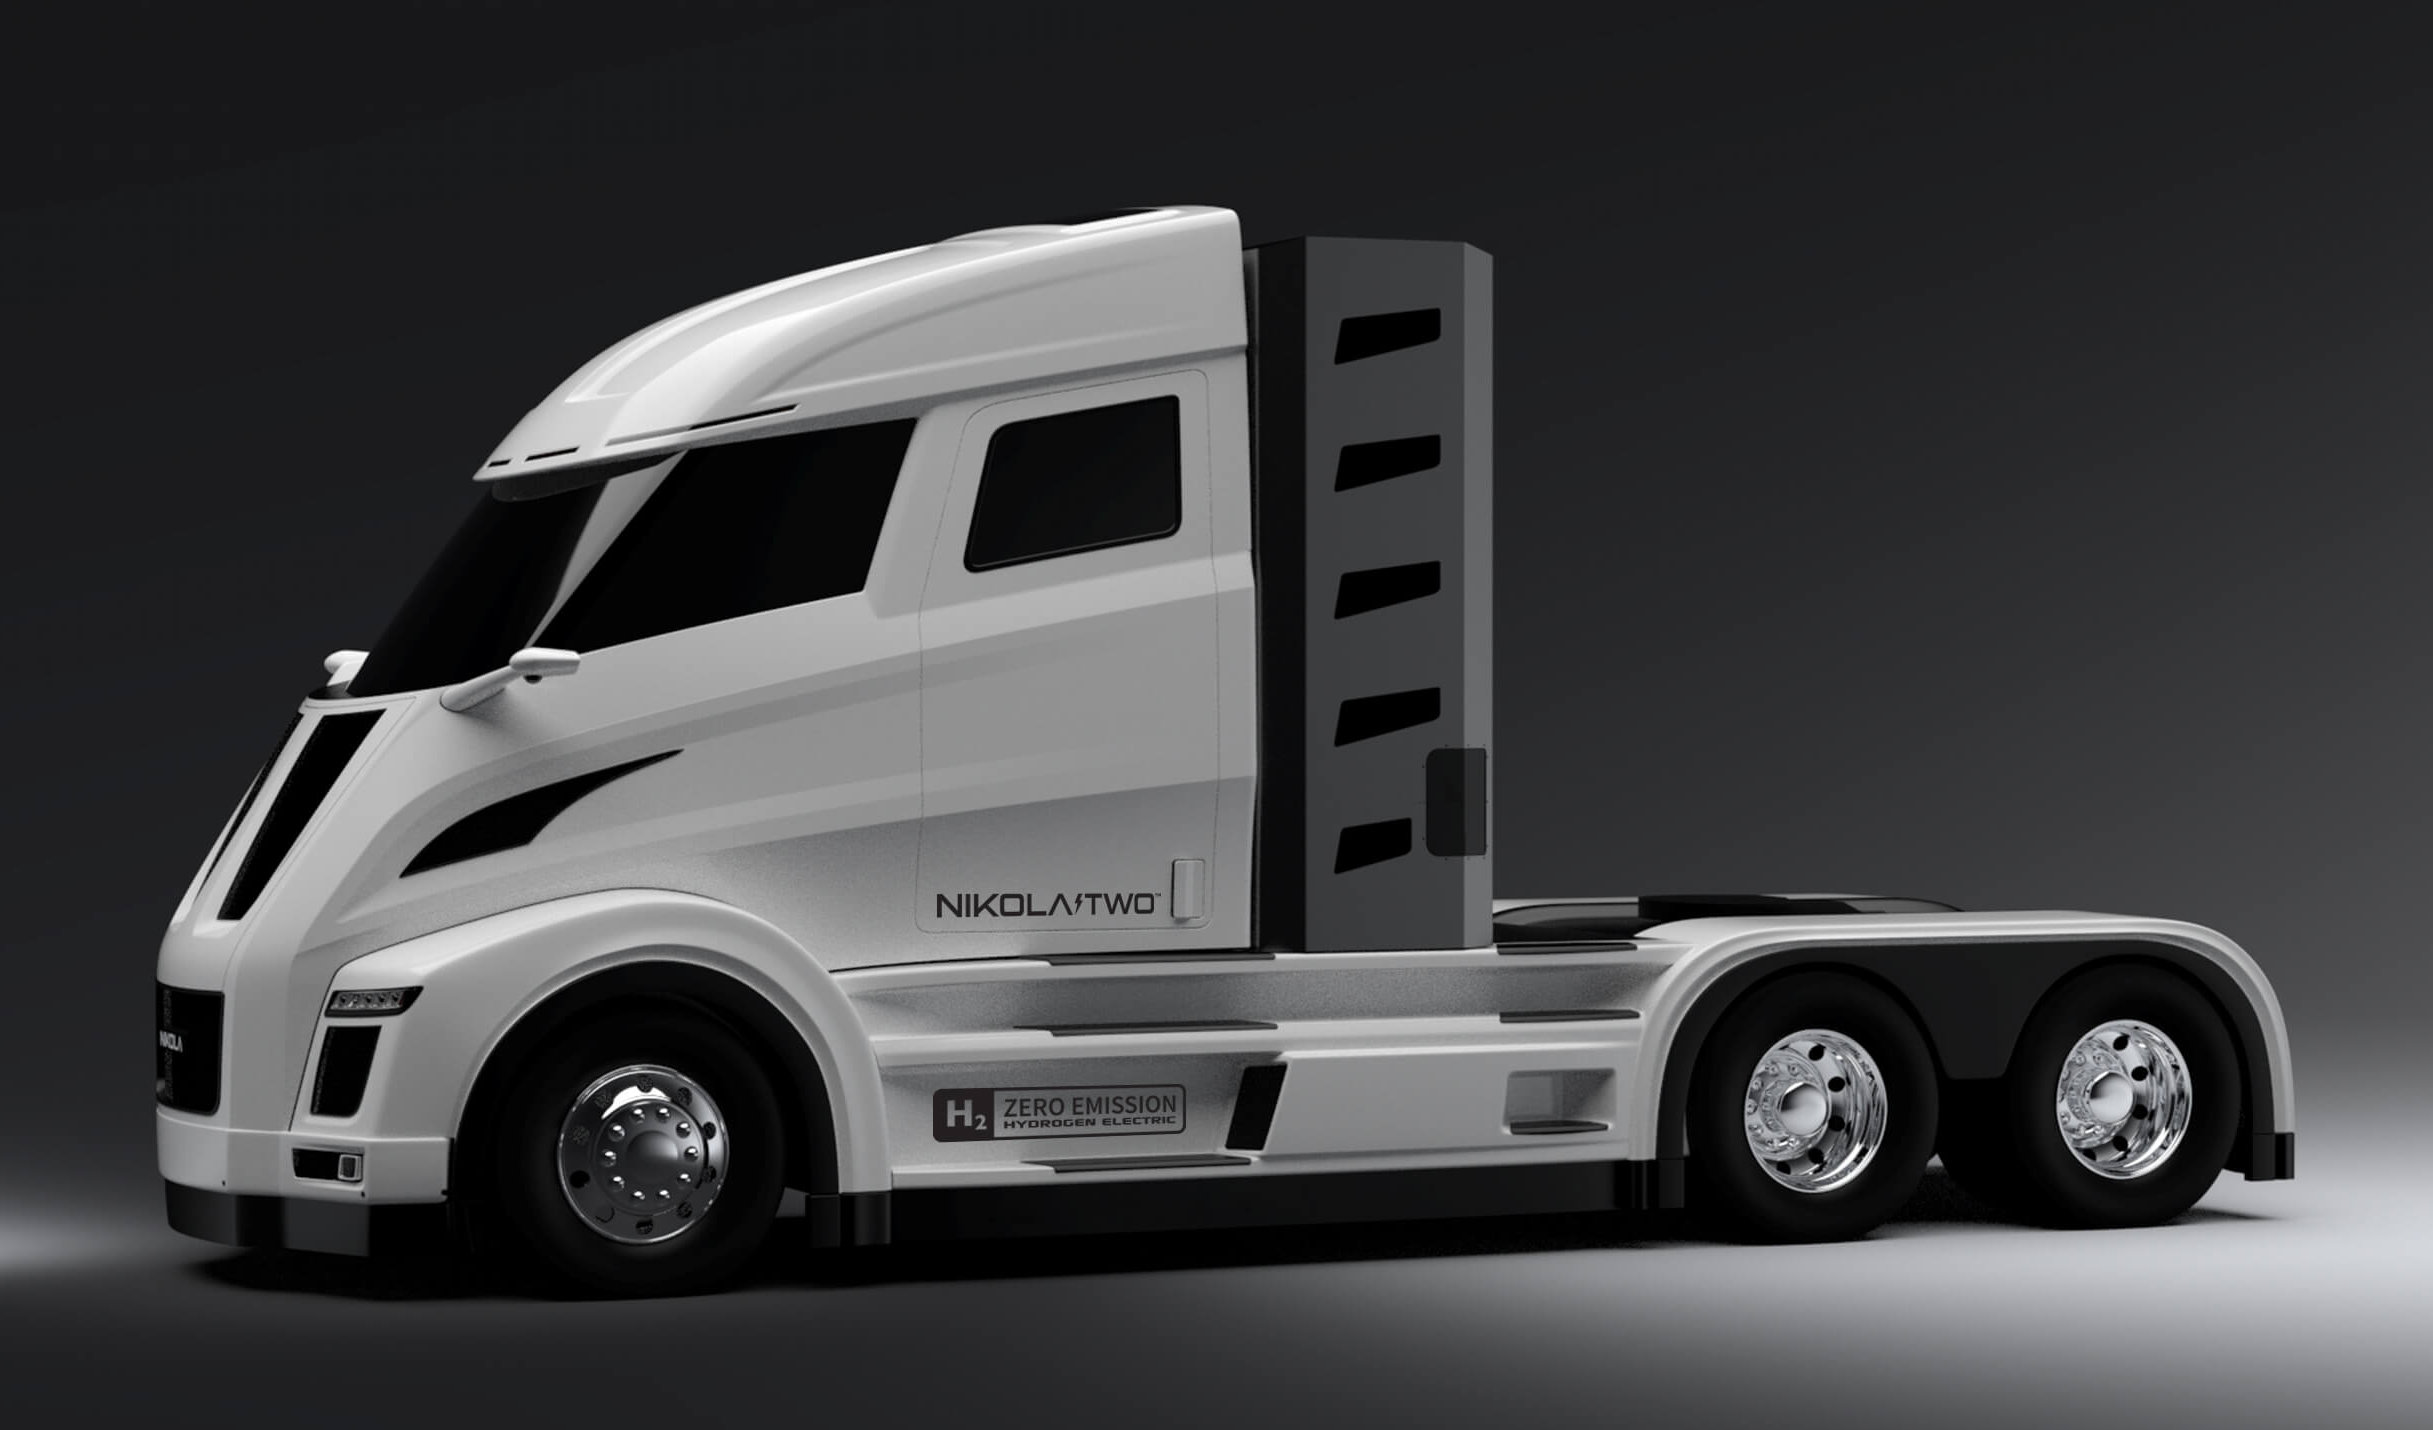 Nikola Names Fuel Cell Suppliers For Hydrogen Truck Adds